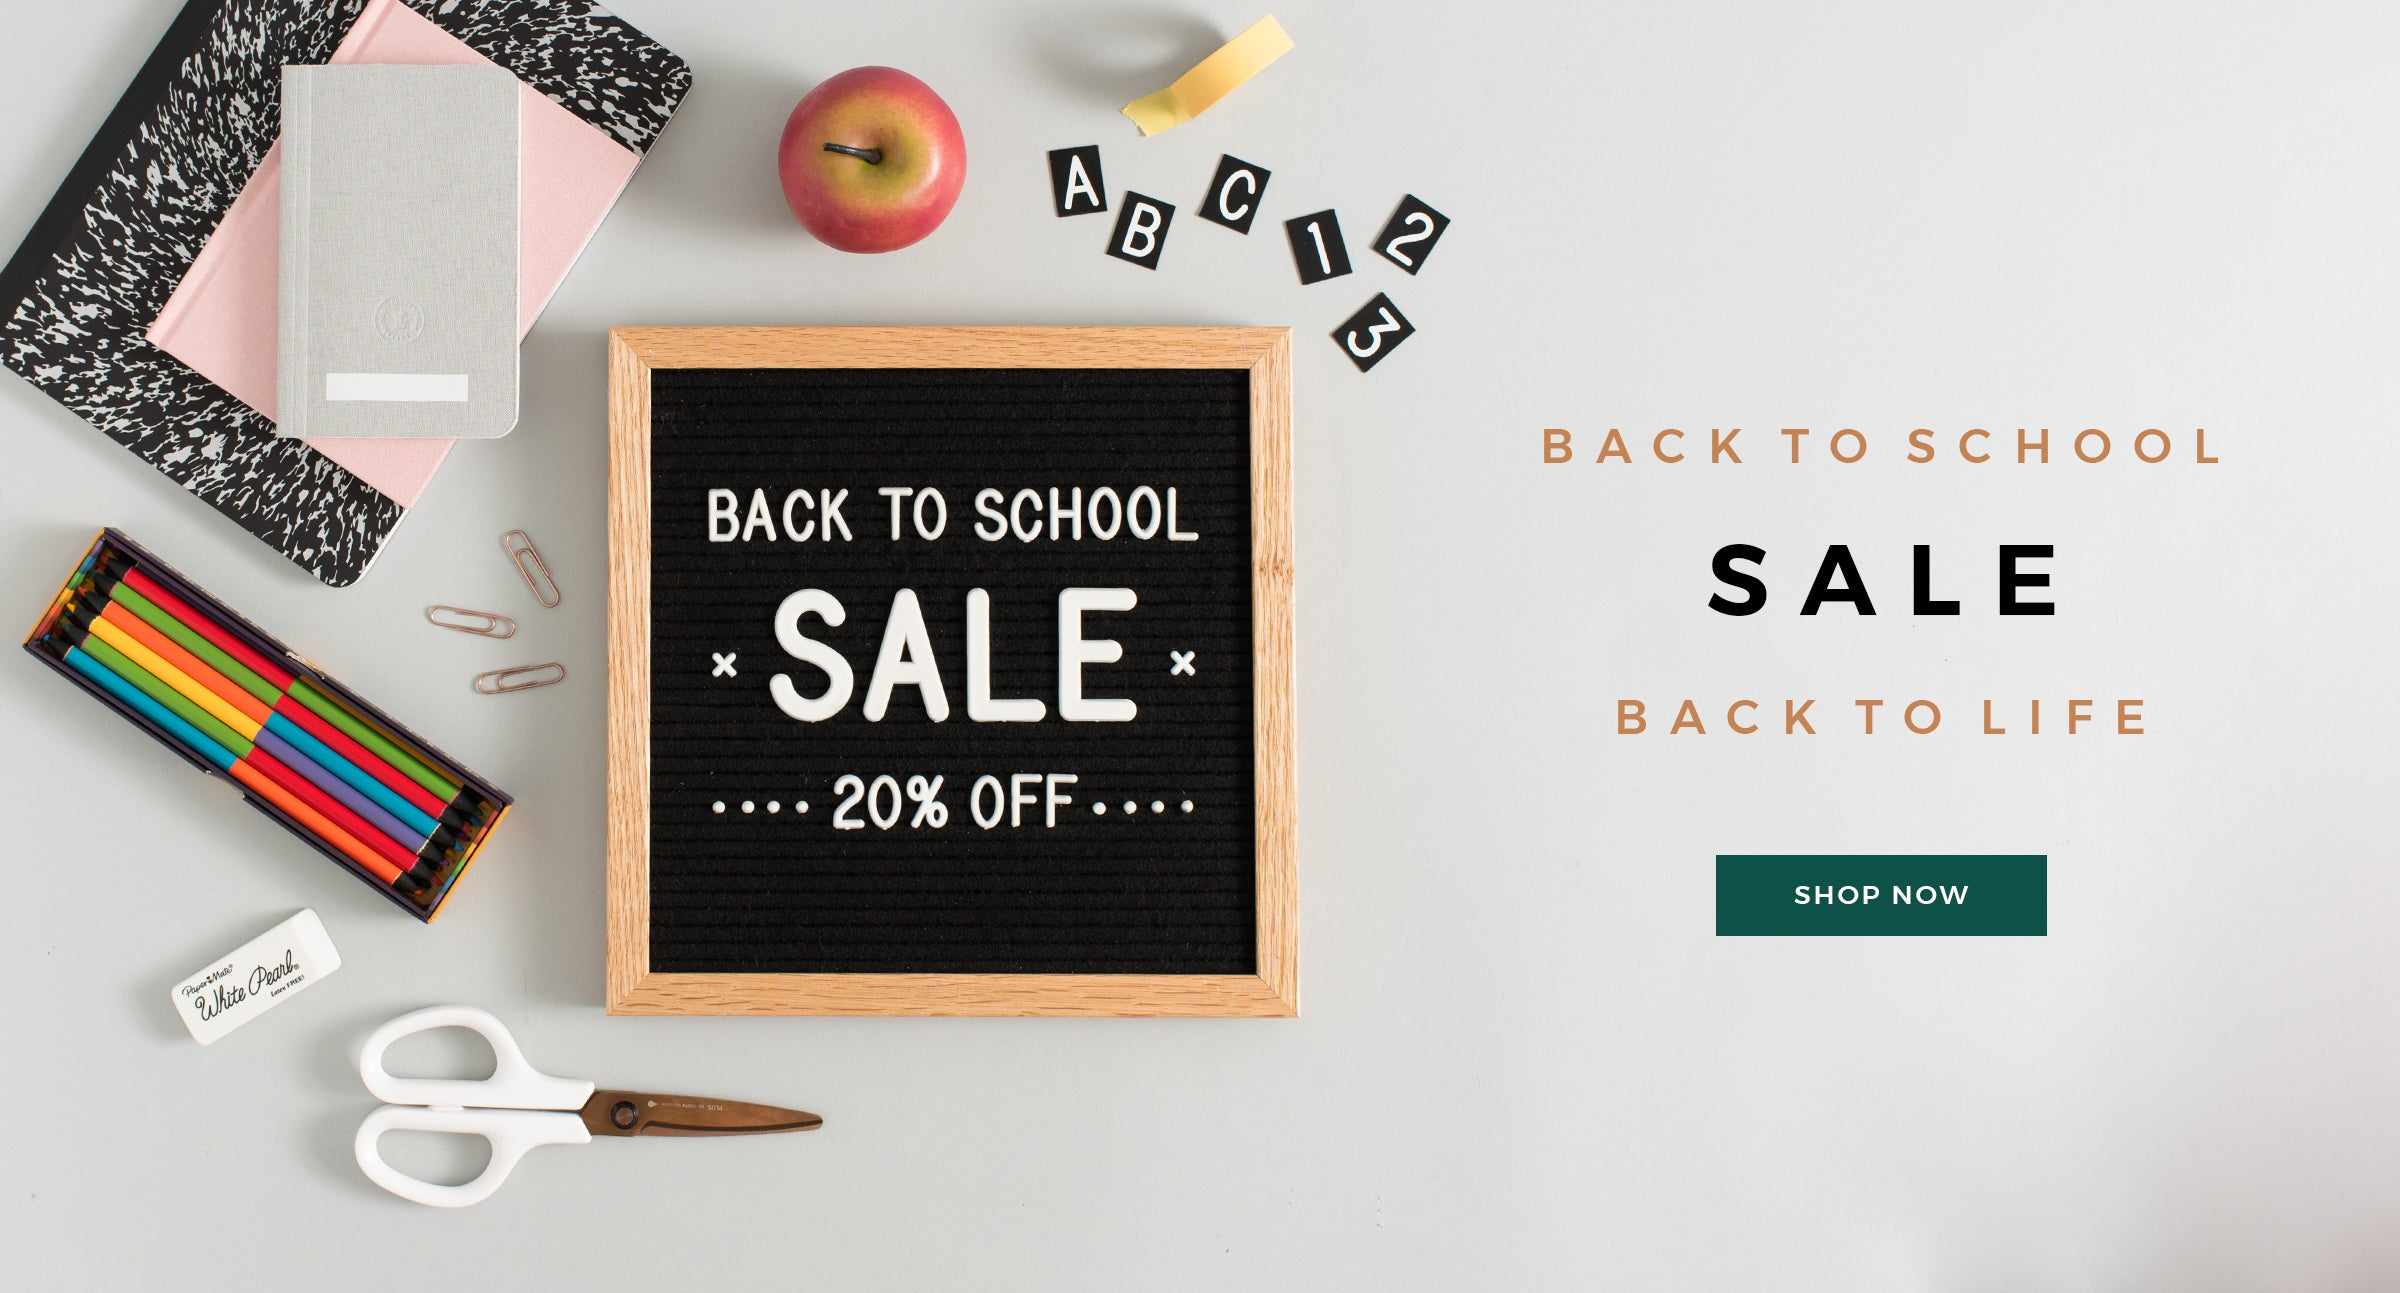 Back to School Sale at Letterfolk